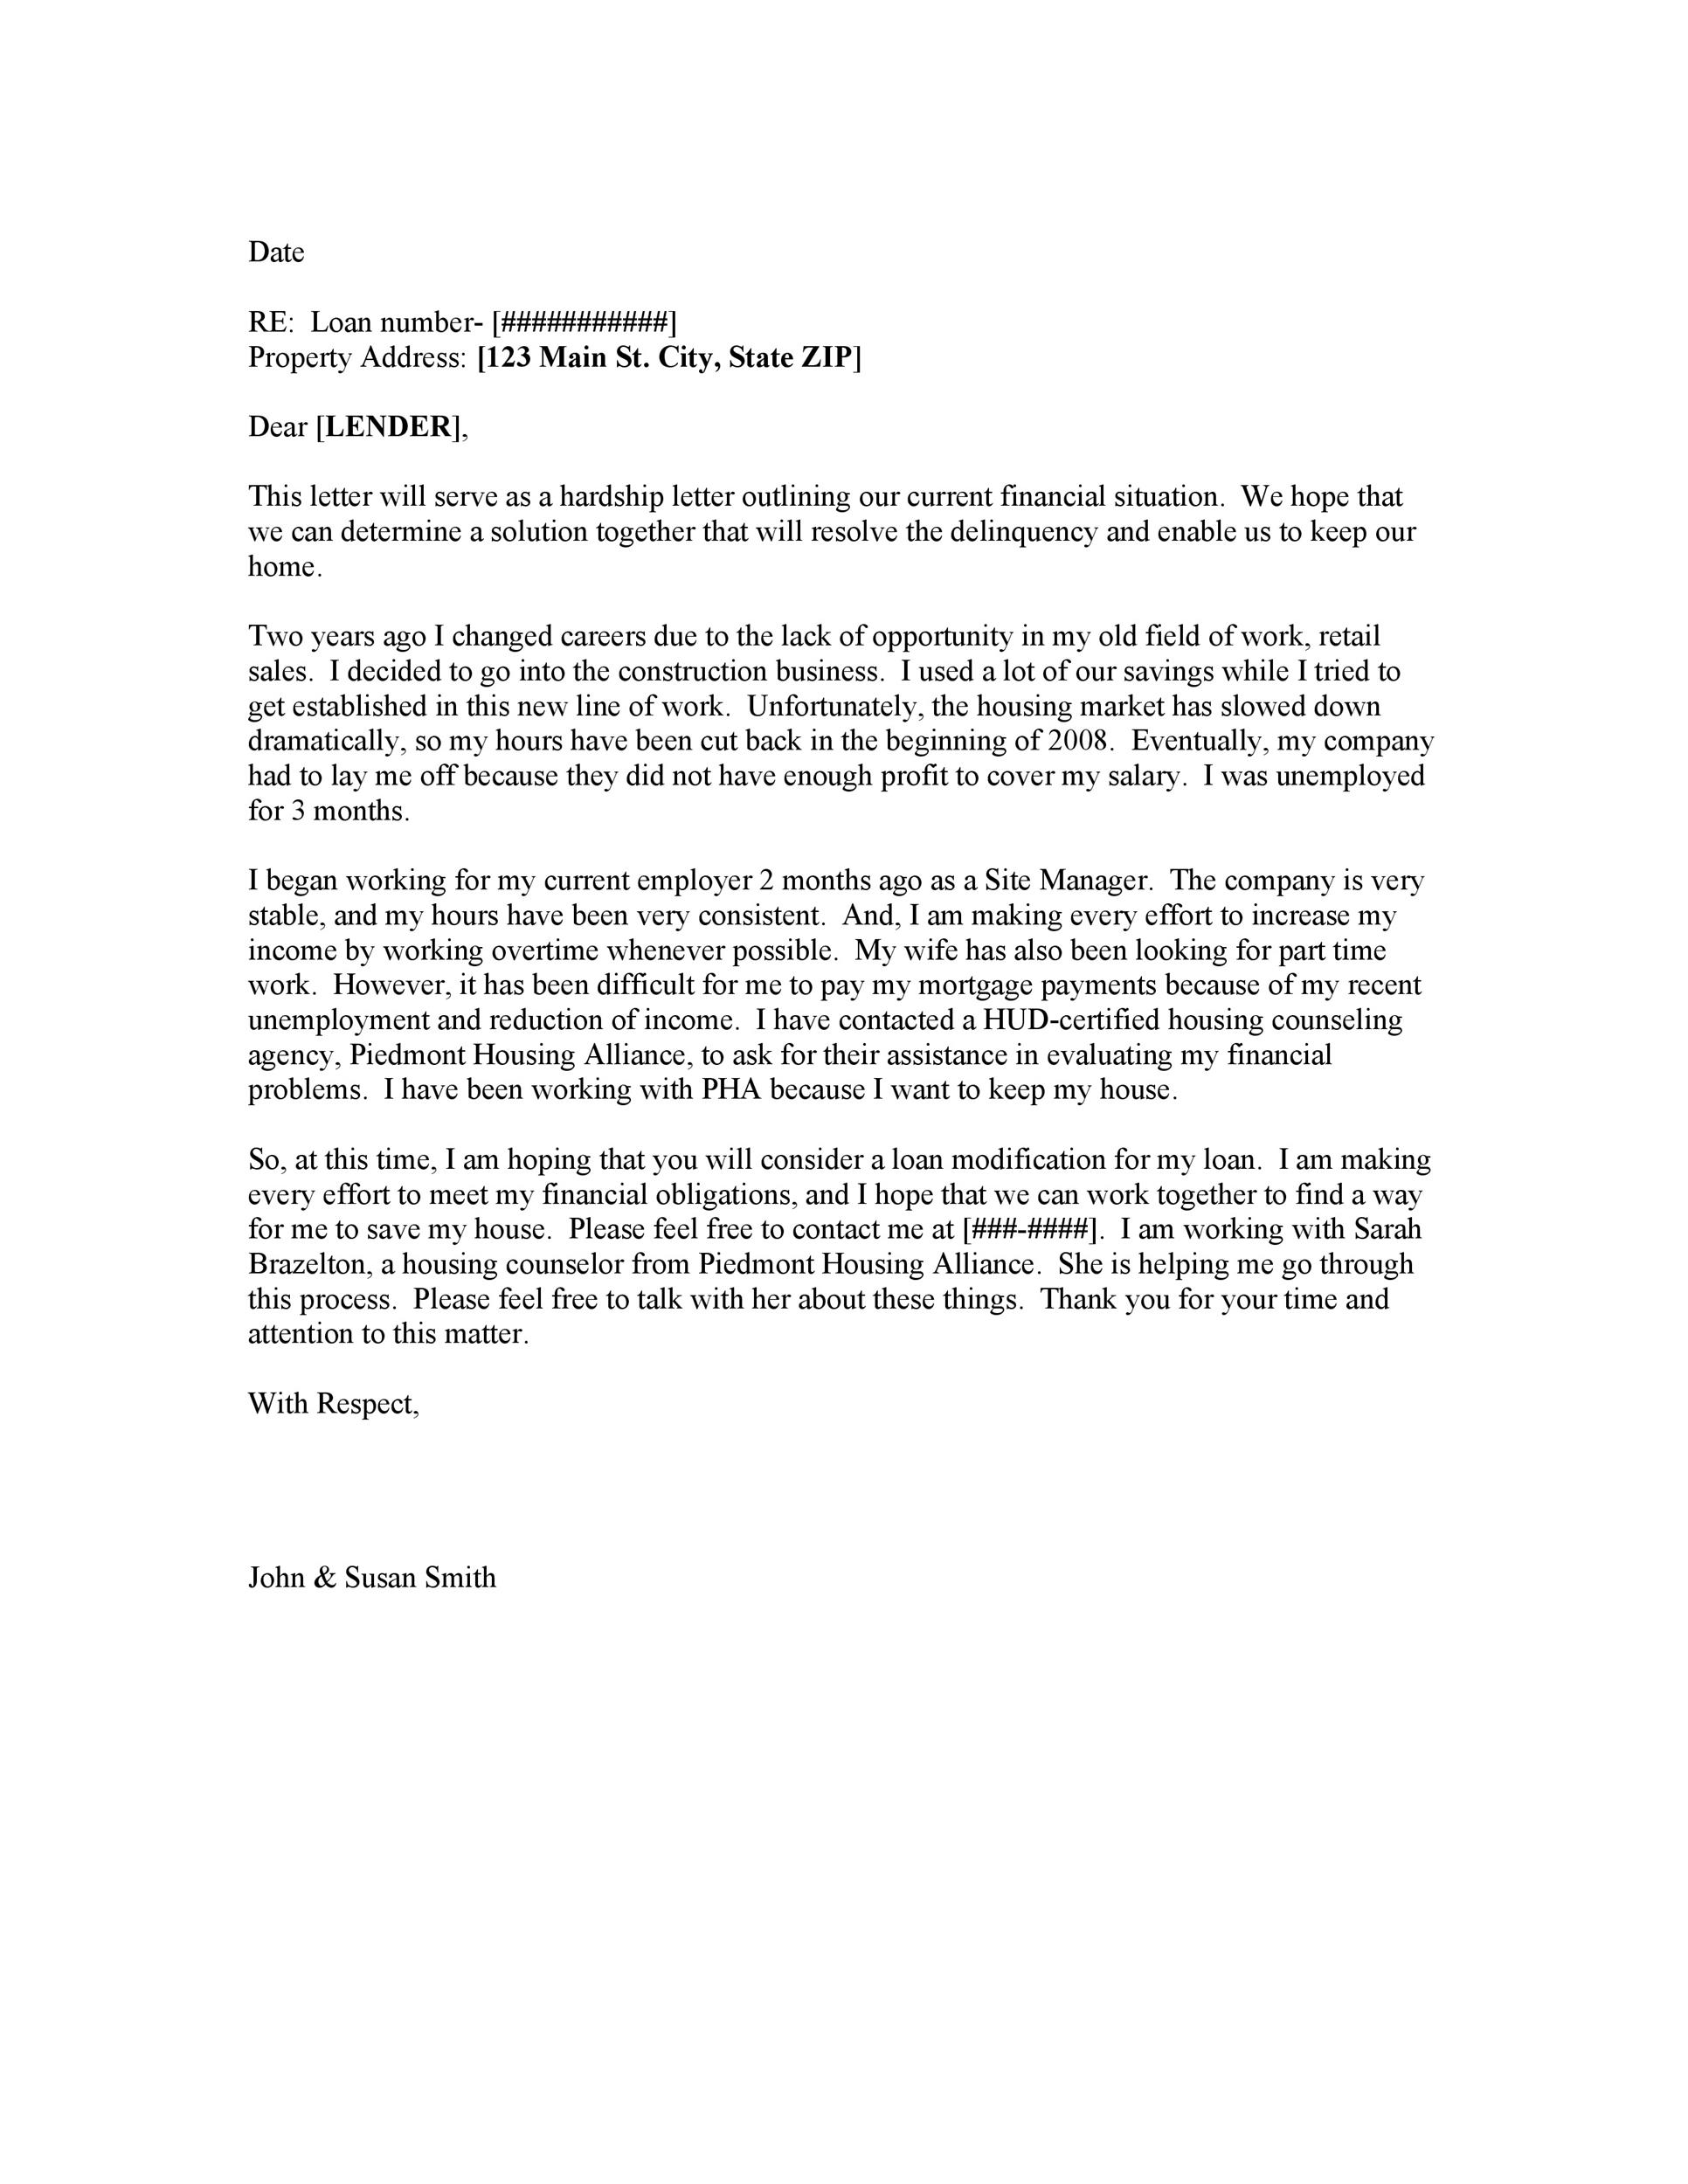 Free Hardship Letter Template 30